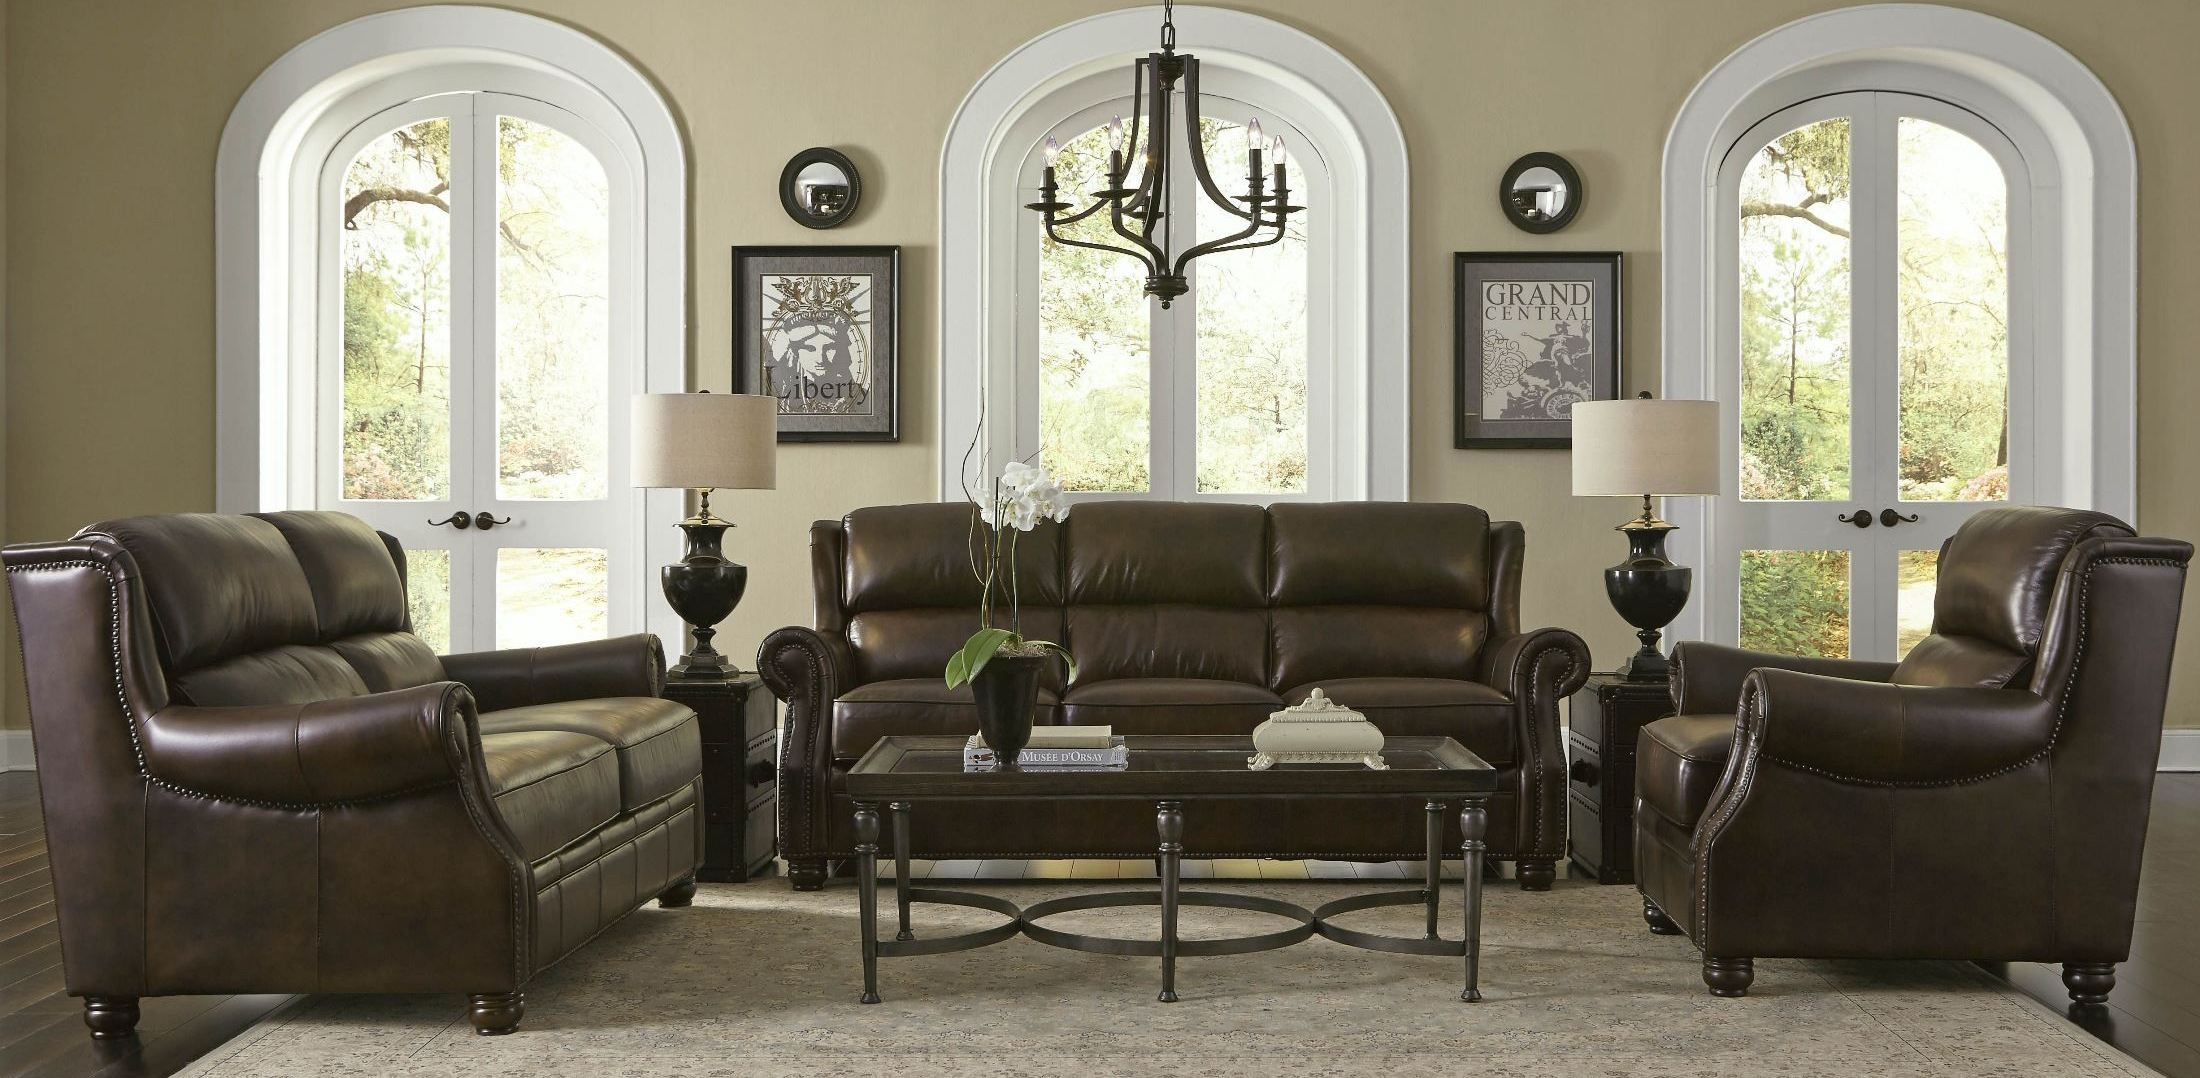 Appalachian rustic savauge leather living room set from - Rustic living room furniture sets ...